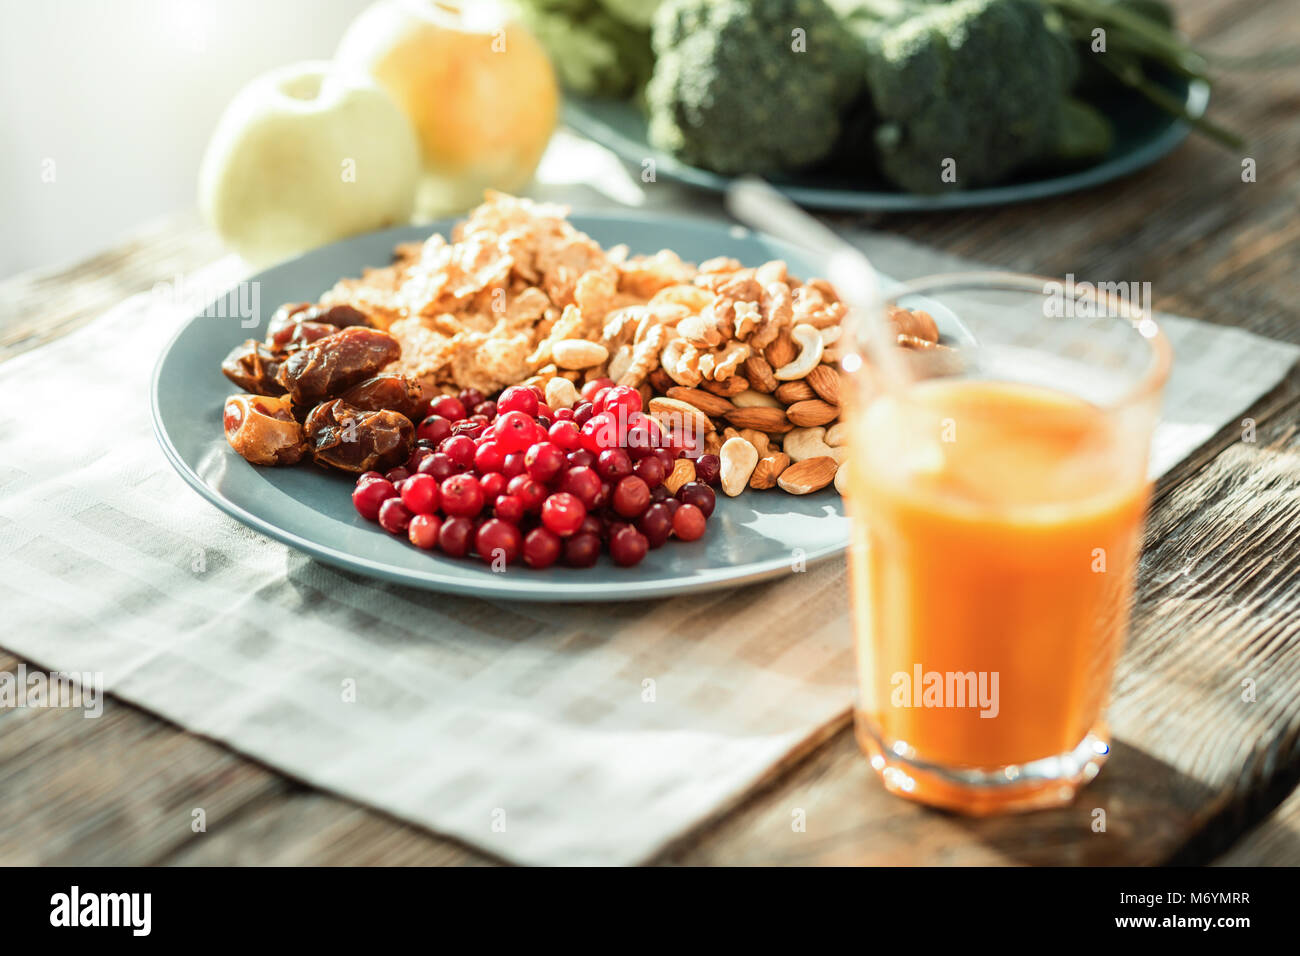 Different products lying in the plate. - Stock Image